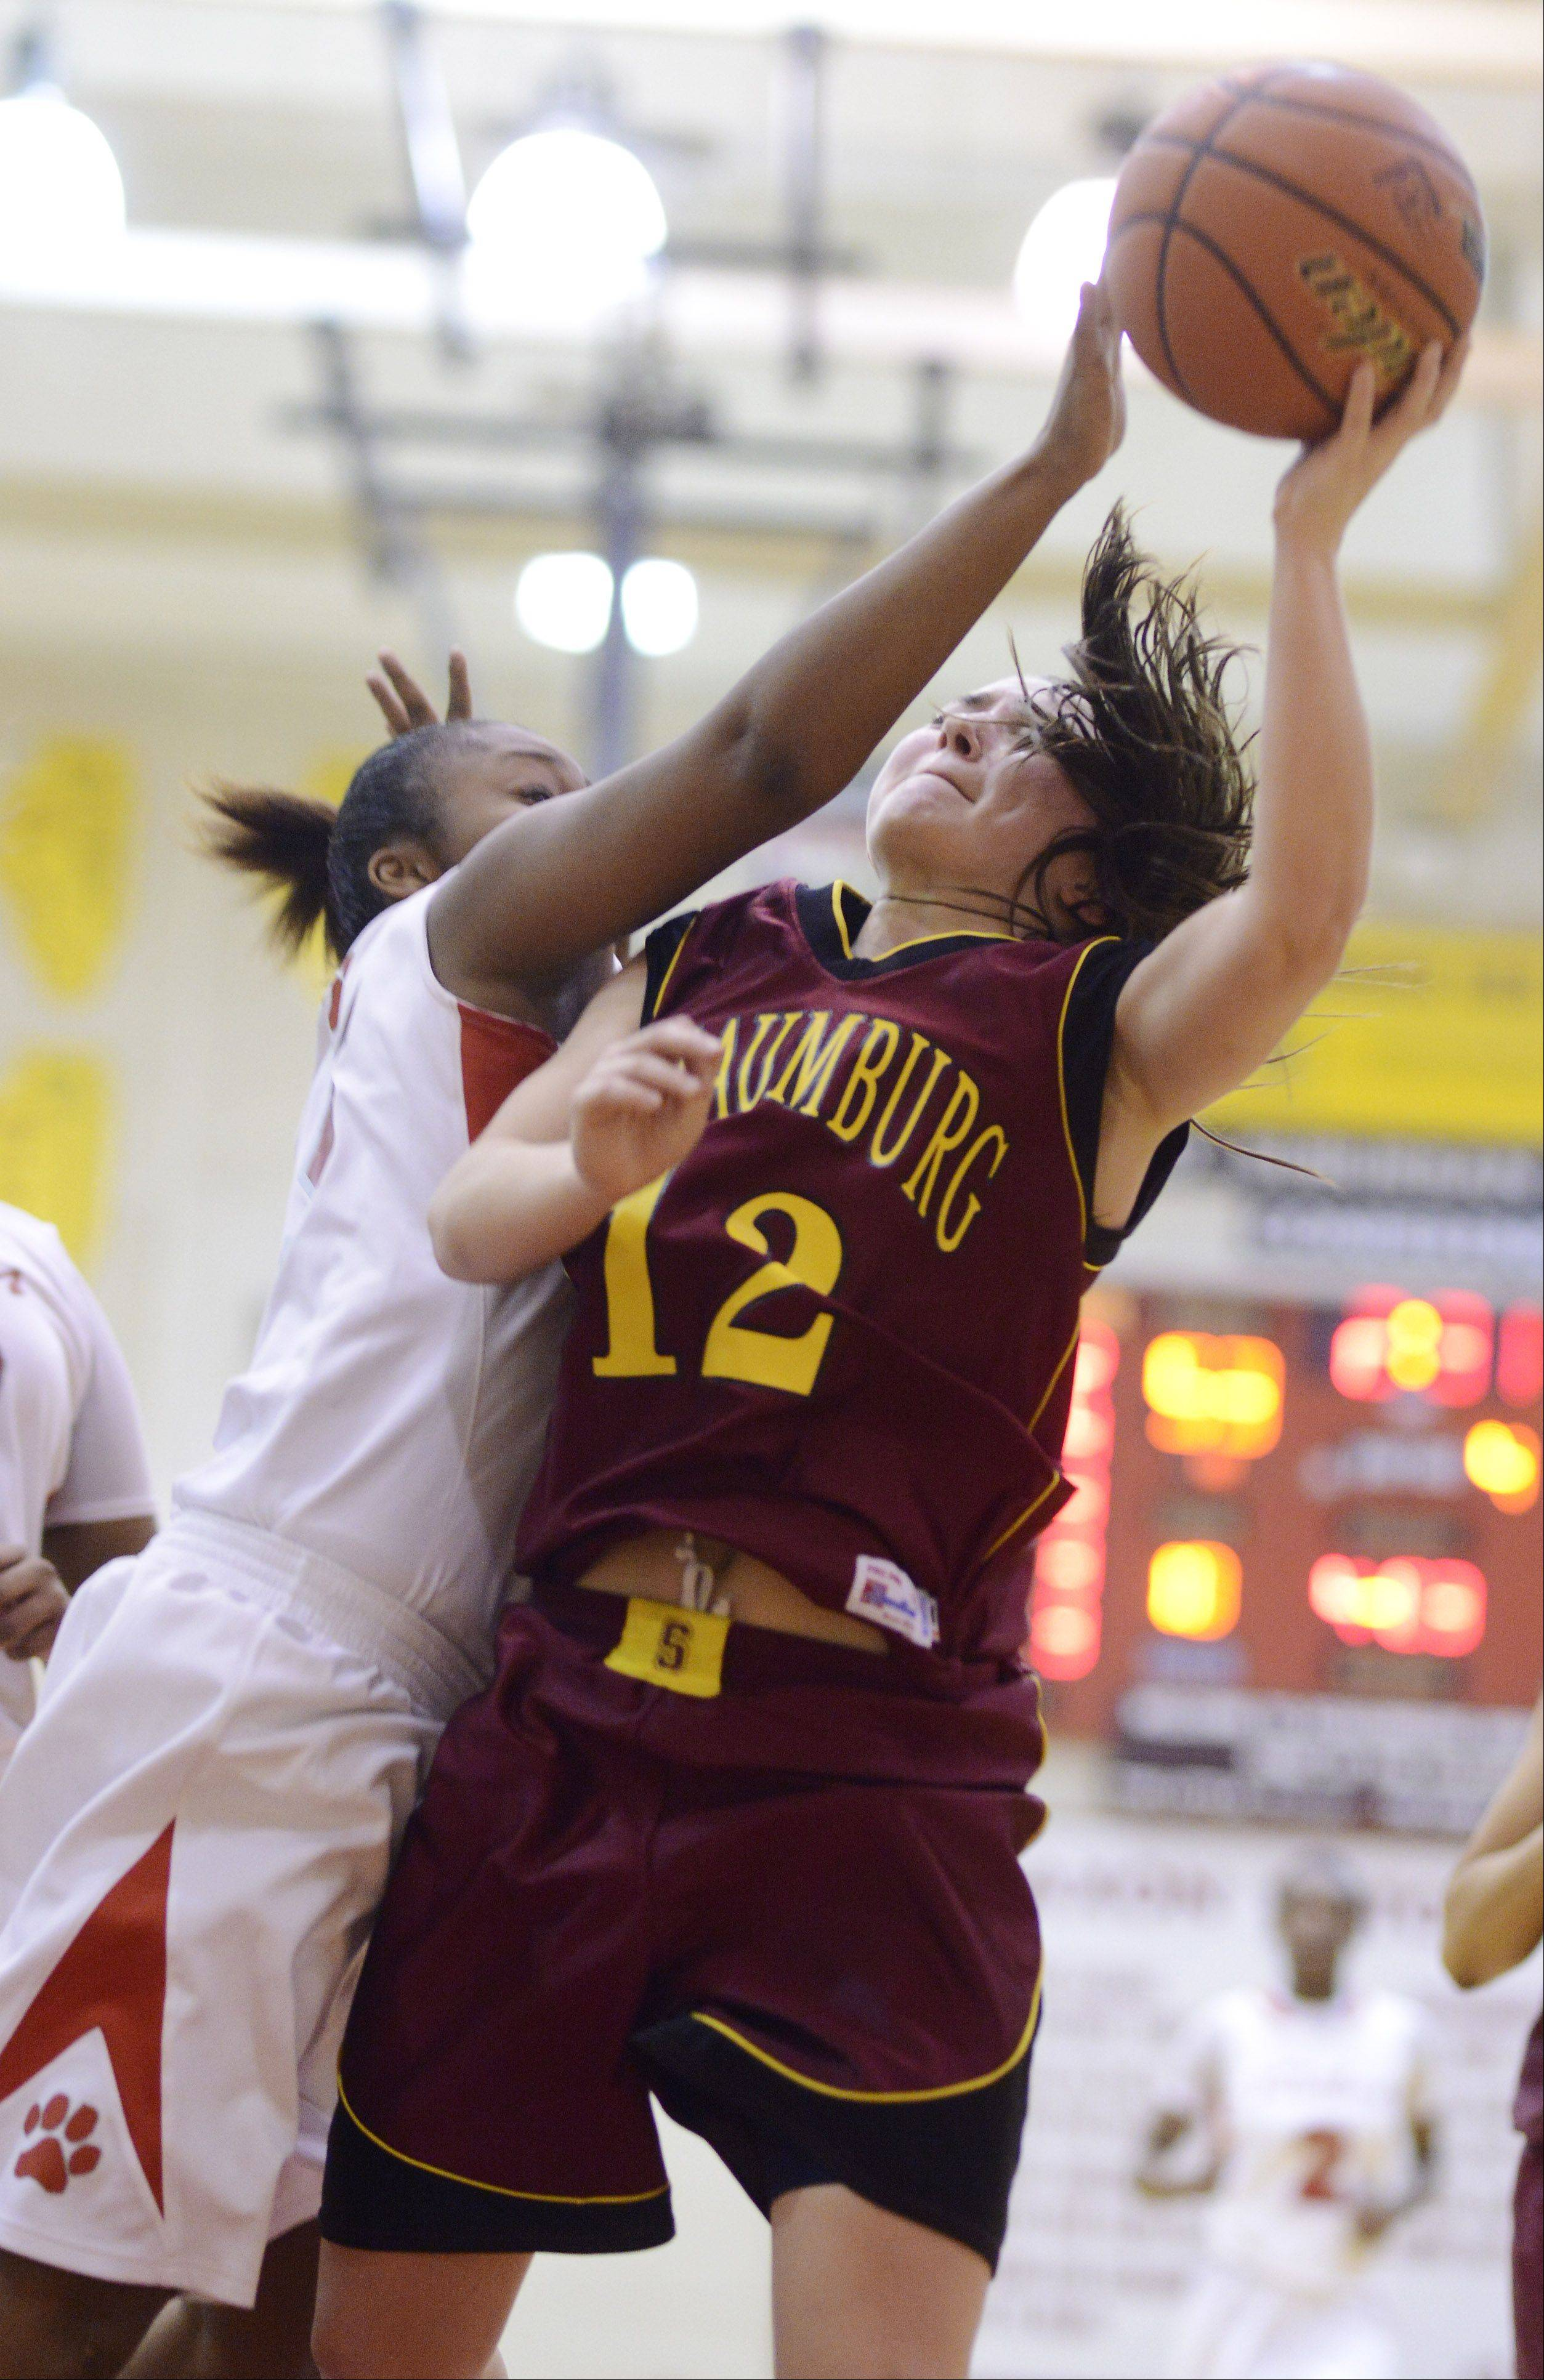 Schaumburg's Amanda Kelly, right, gets fouled on her way to the basket by Proviso West's Nia Roscoe during Tuesday's Class 4A regional semifinal at Schaumburg.